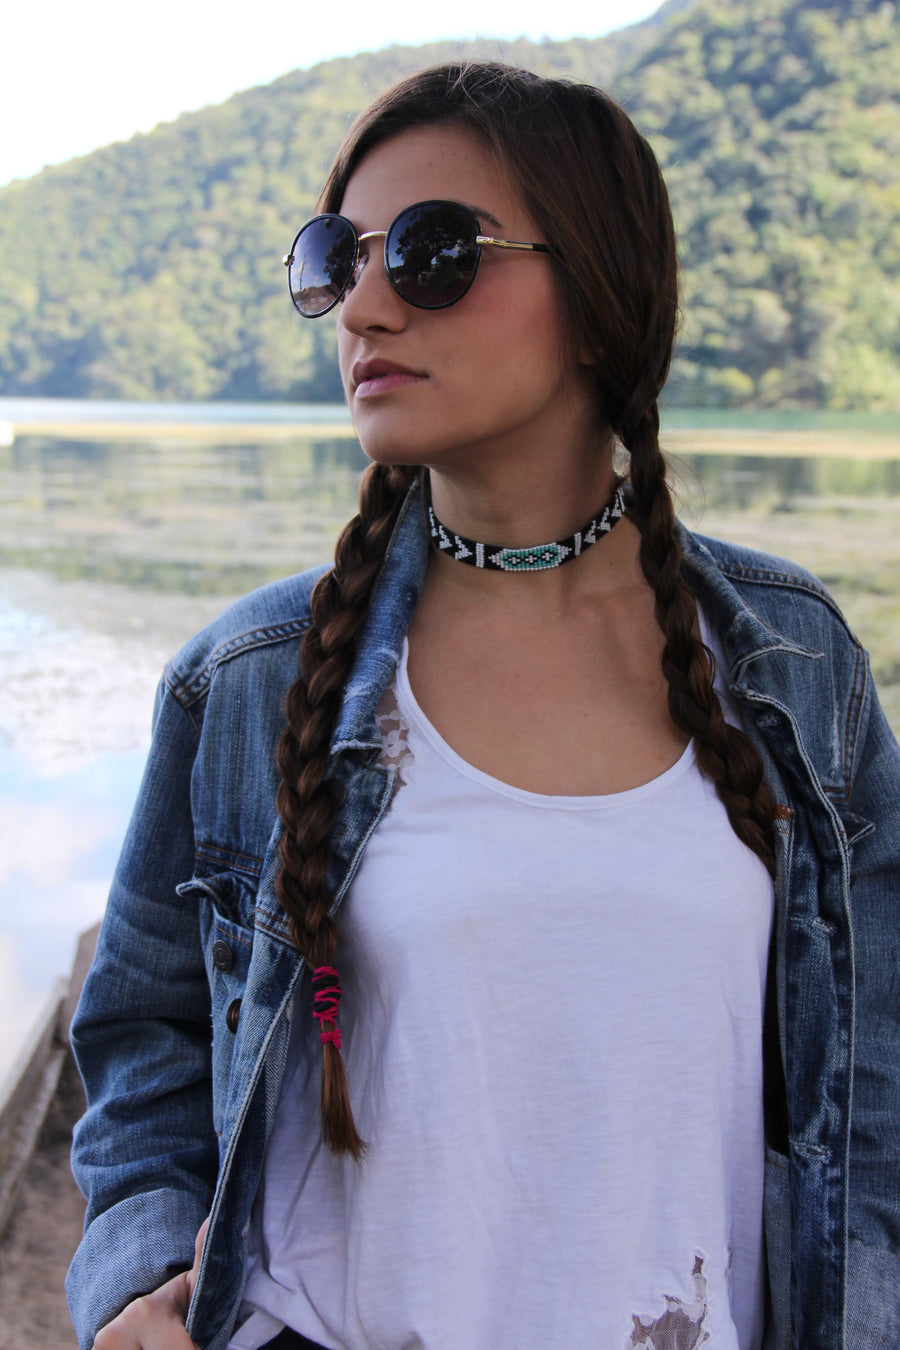 Choker Necklace - WOMEN OF HOPE